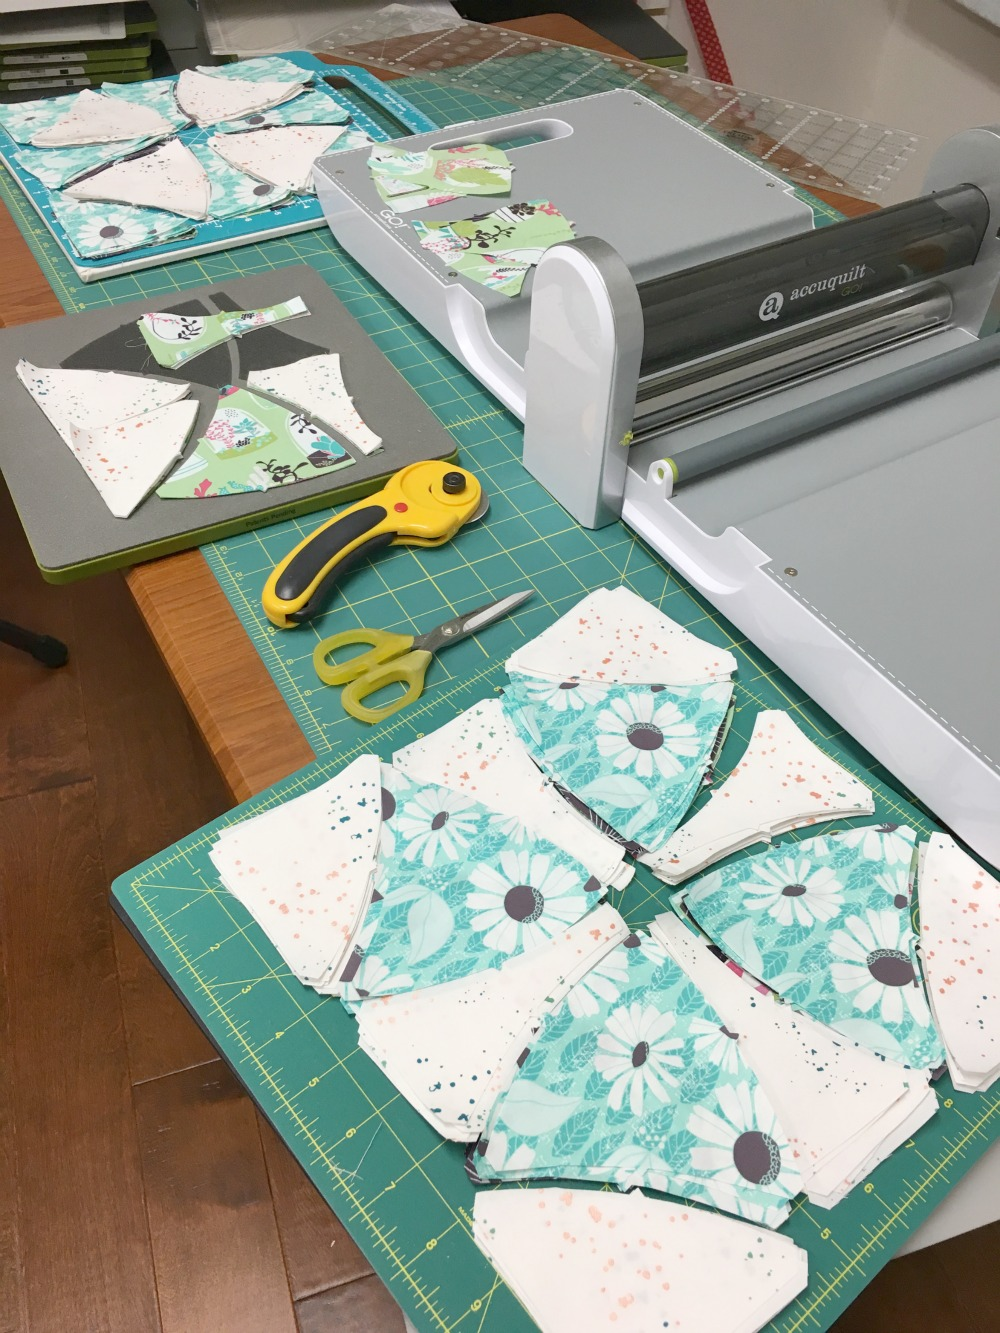 Cutting the Winding Ways Quilt with the Accuquilt